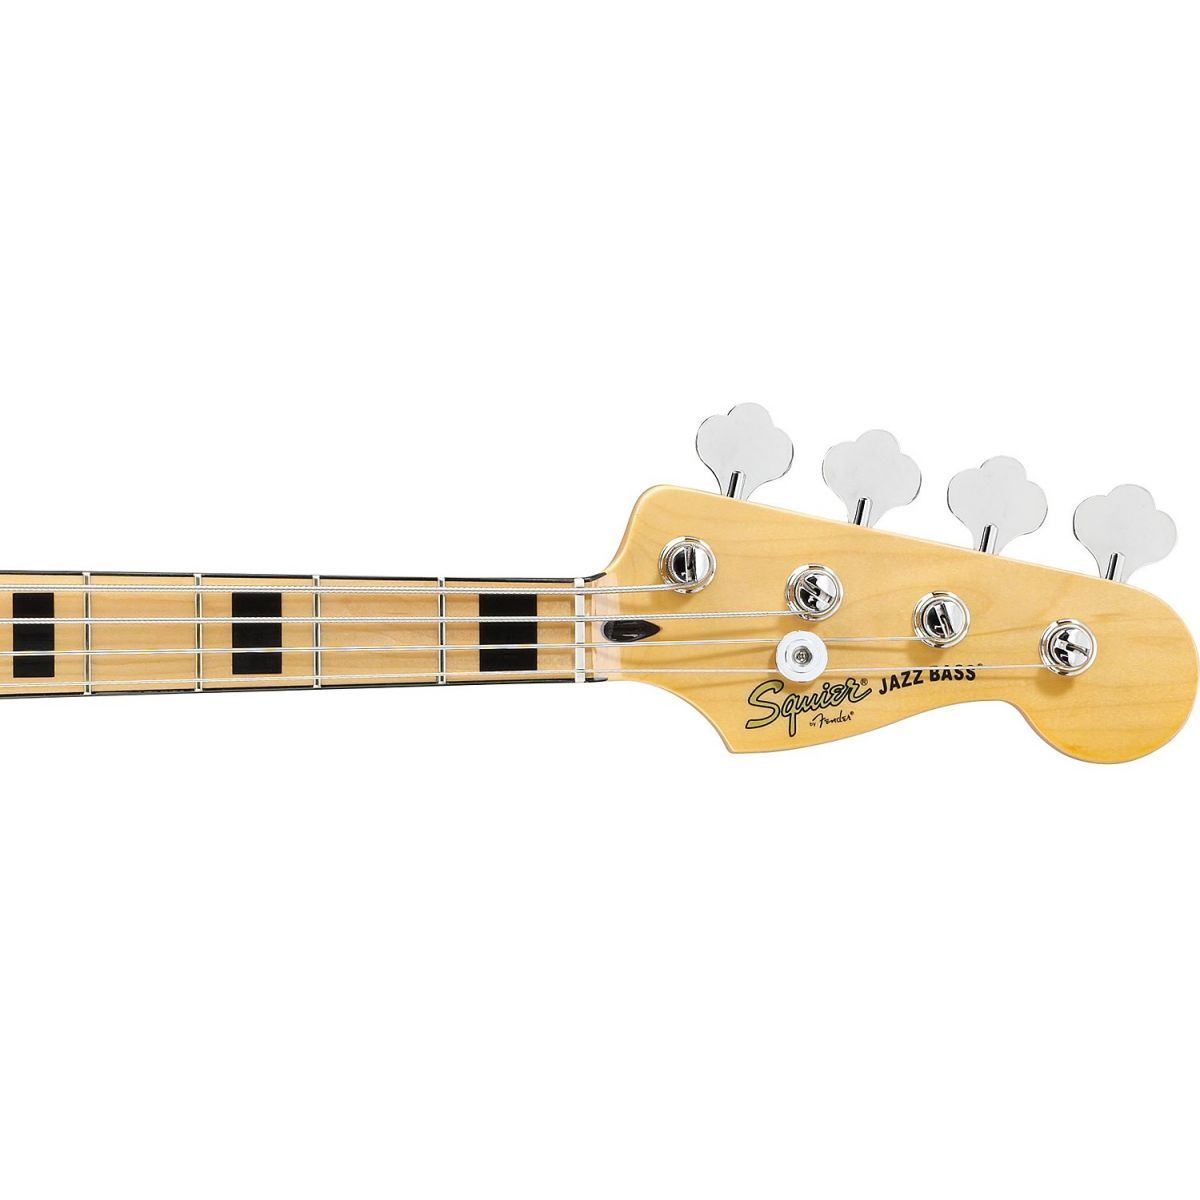 CONTRABAIXO FENDER 030 6702 - SQUIER VINTAGE MODIFIED J. BASS 70 - 521 - NATURAL